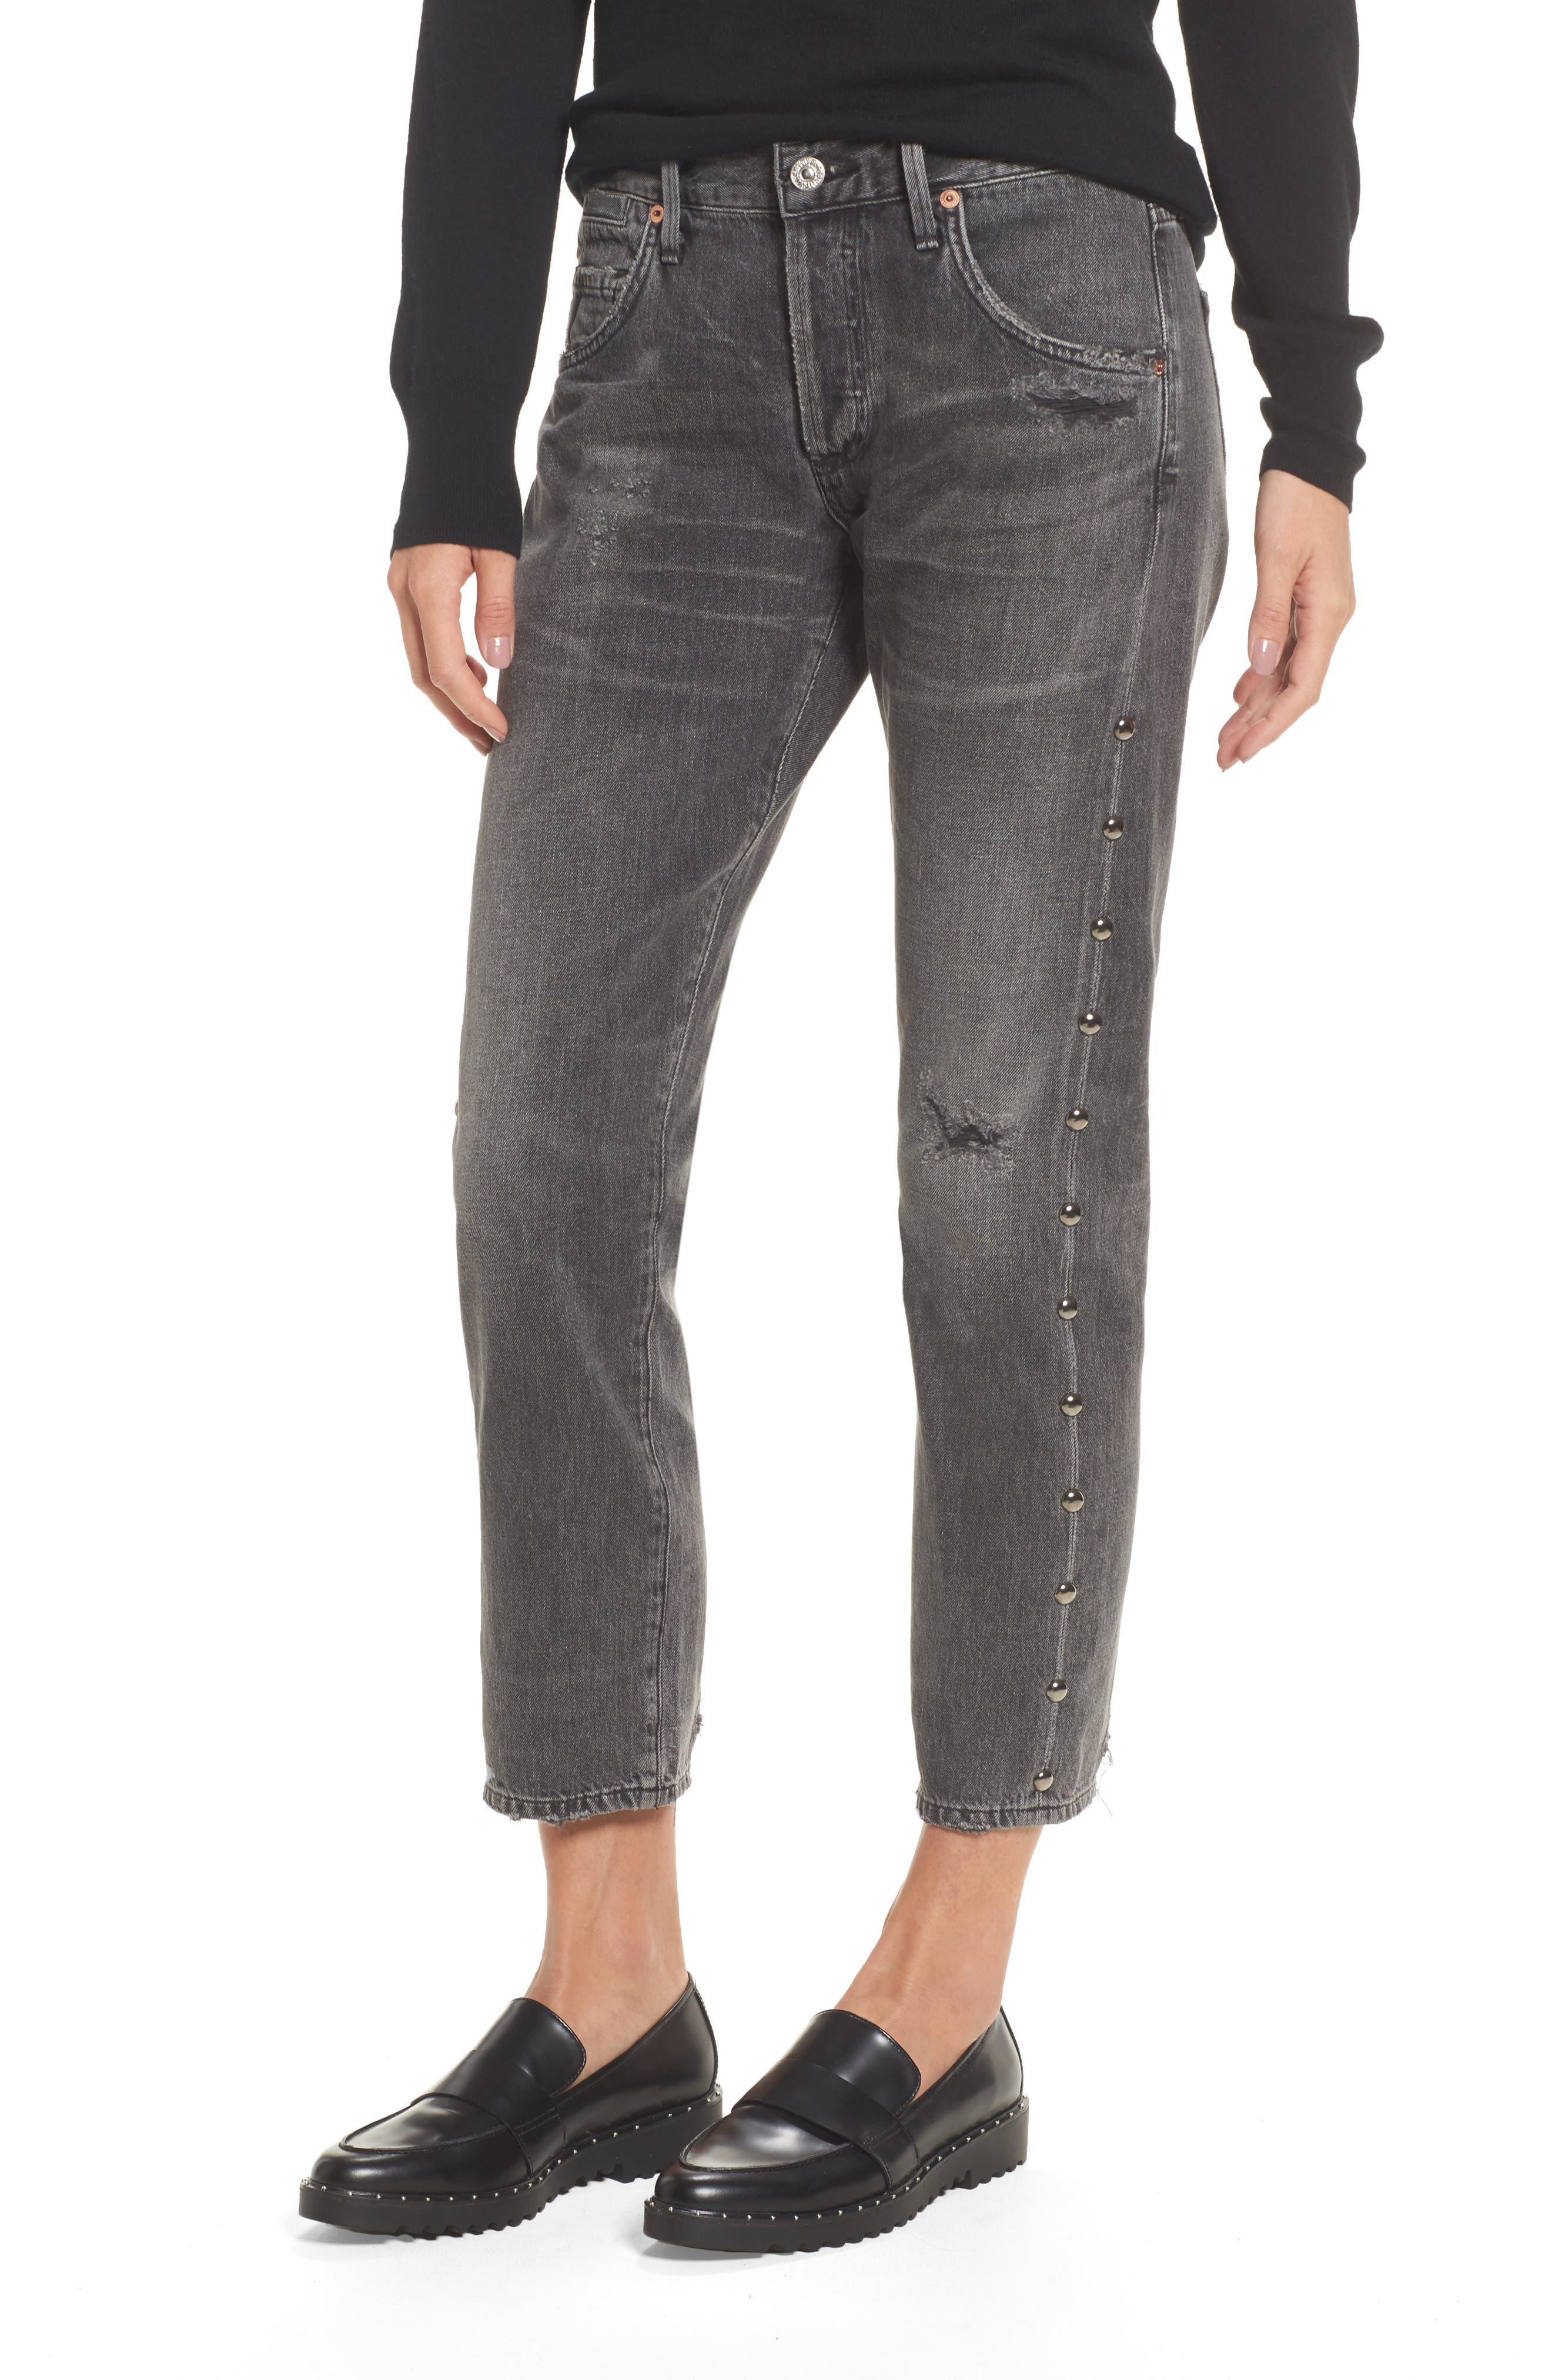 Alternate Image 1 Selected - Citizens of Humanity Emerson Studded Slim Boyfriend Jeans (Studded Hideout)